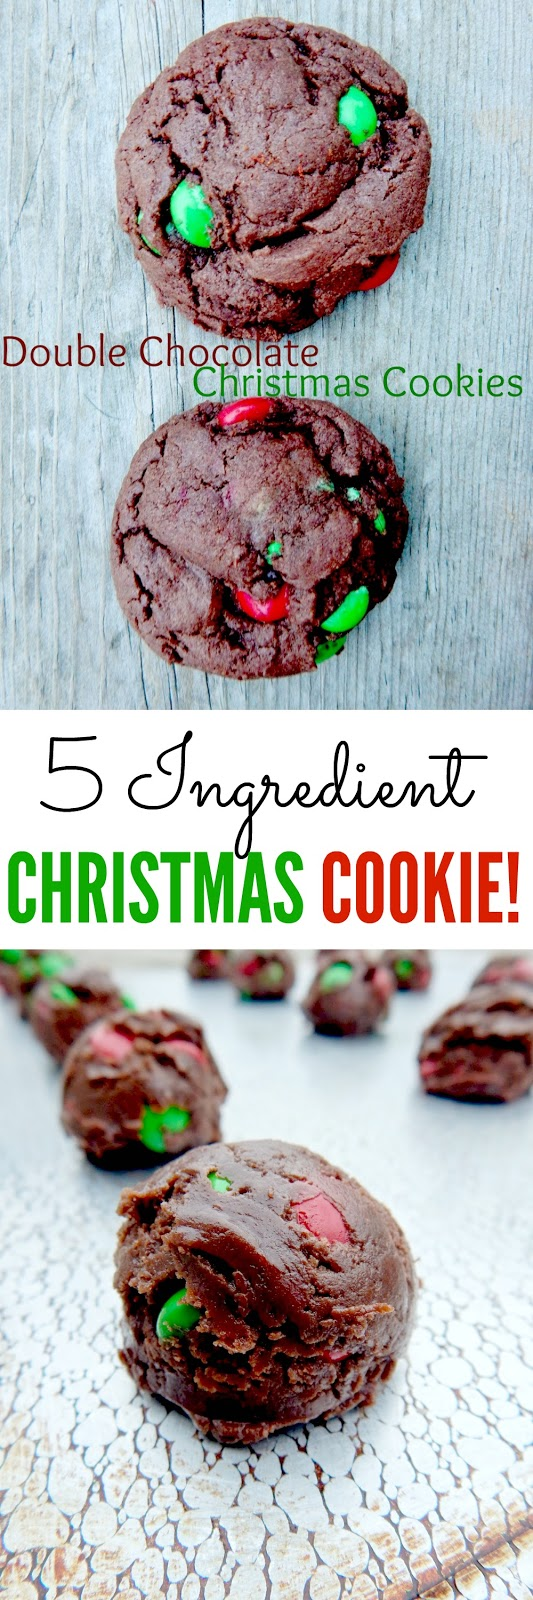 double chocolate christmas cookies (sweetandsavoryfood.com)